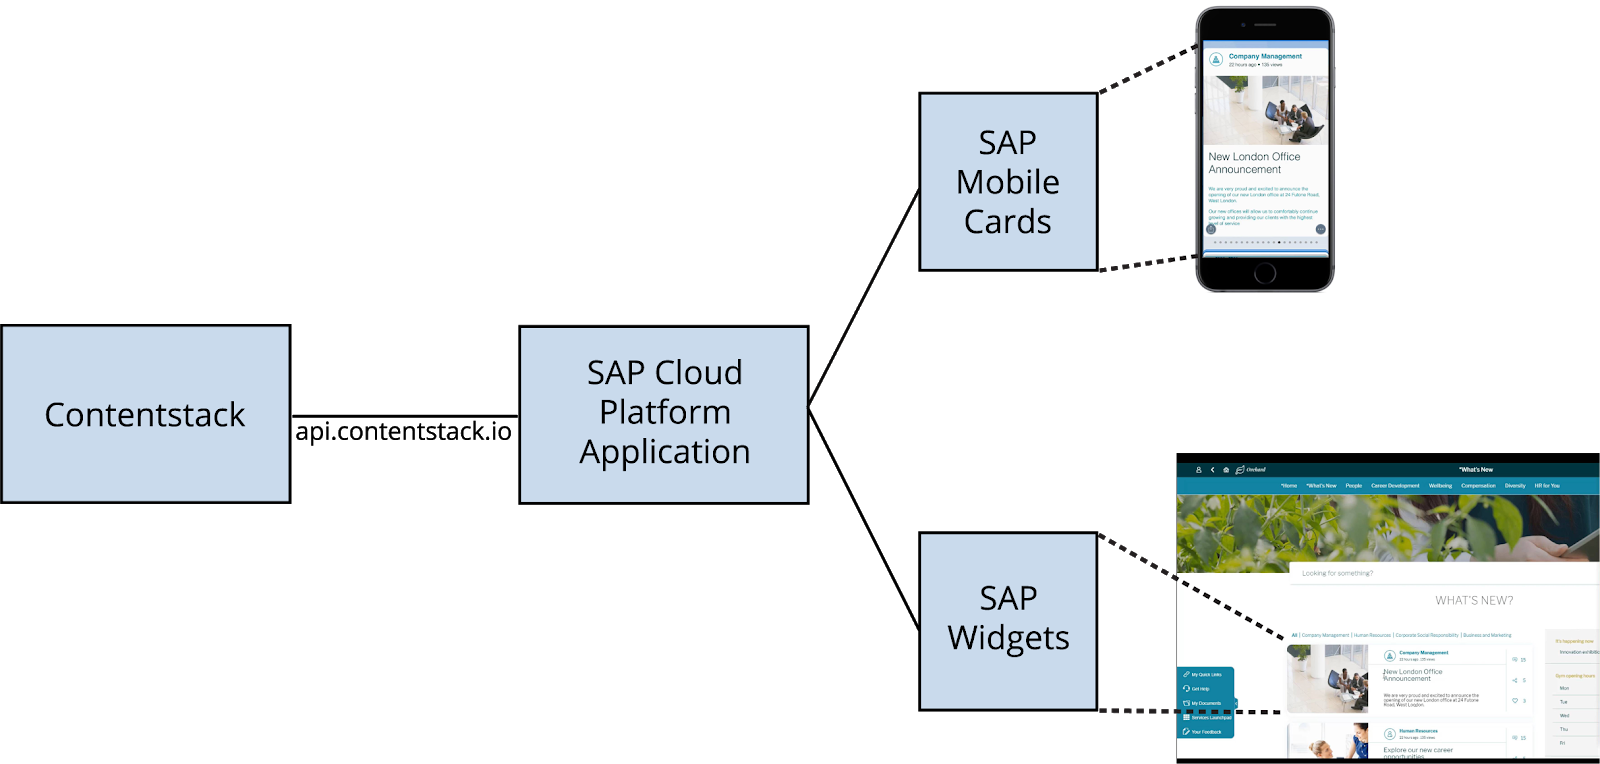 sap-portal-diagram.png